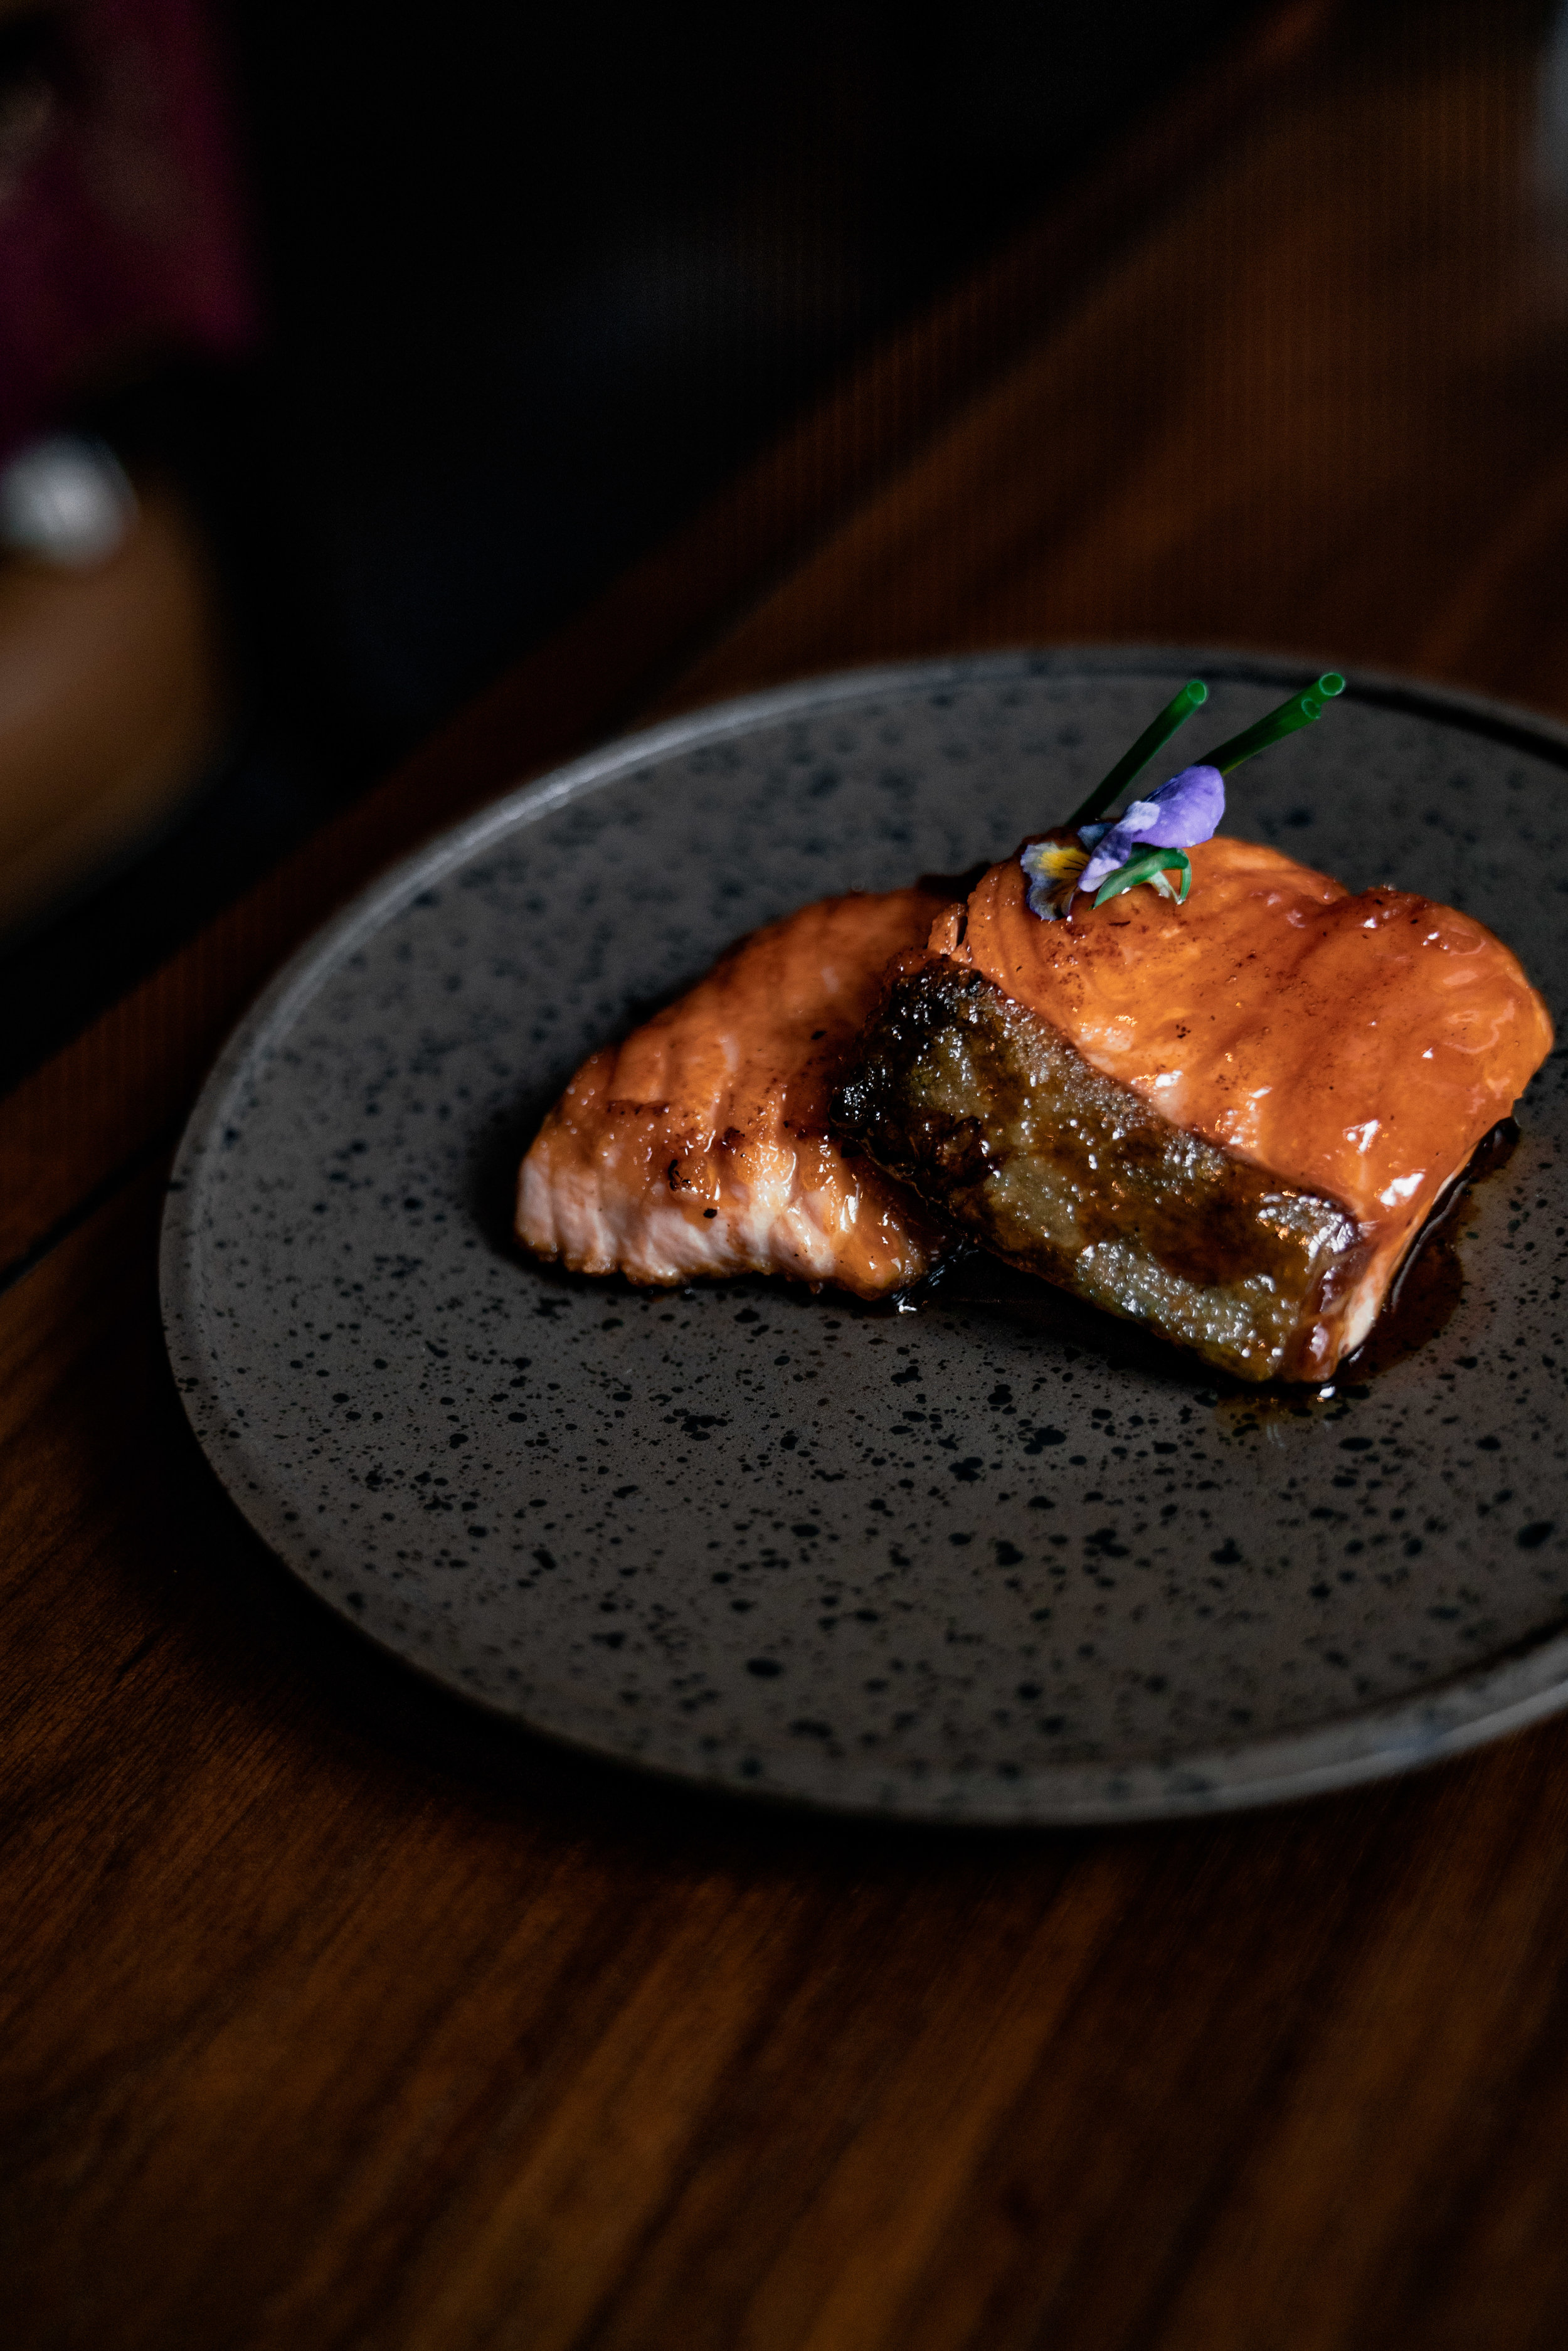 Pan fried fillet of Norwegian salmon in yuzu teriyaki sauce